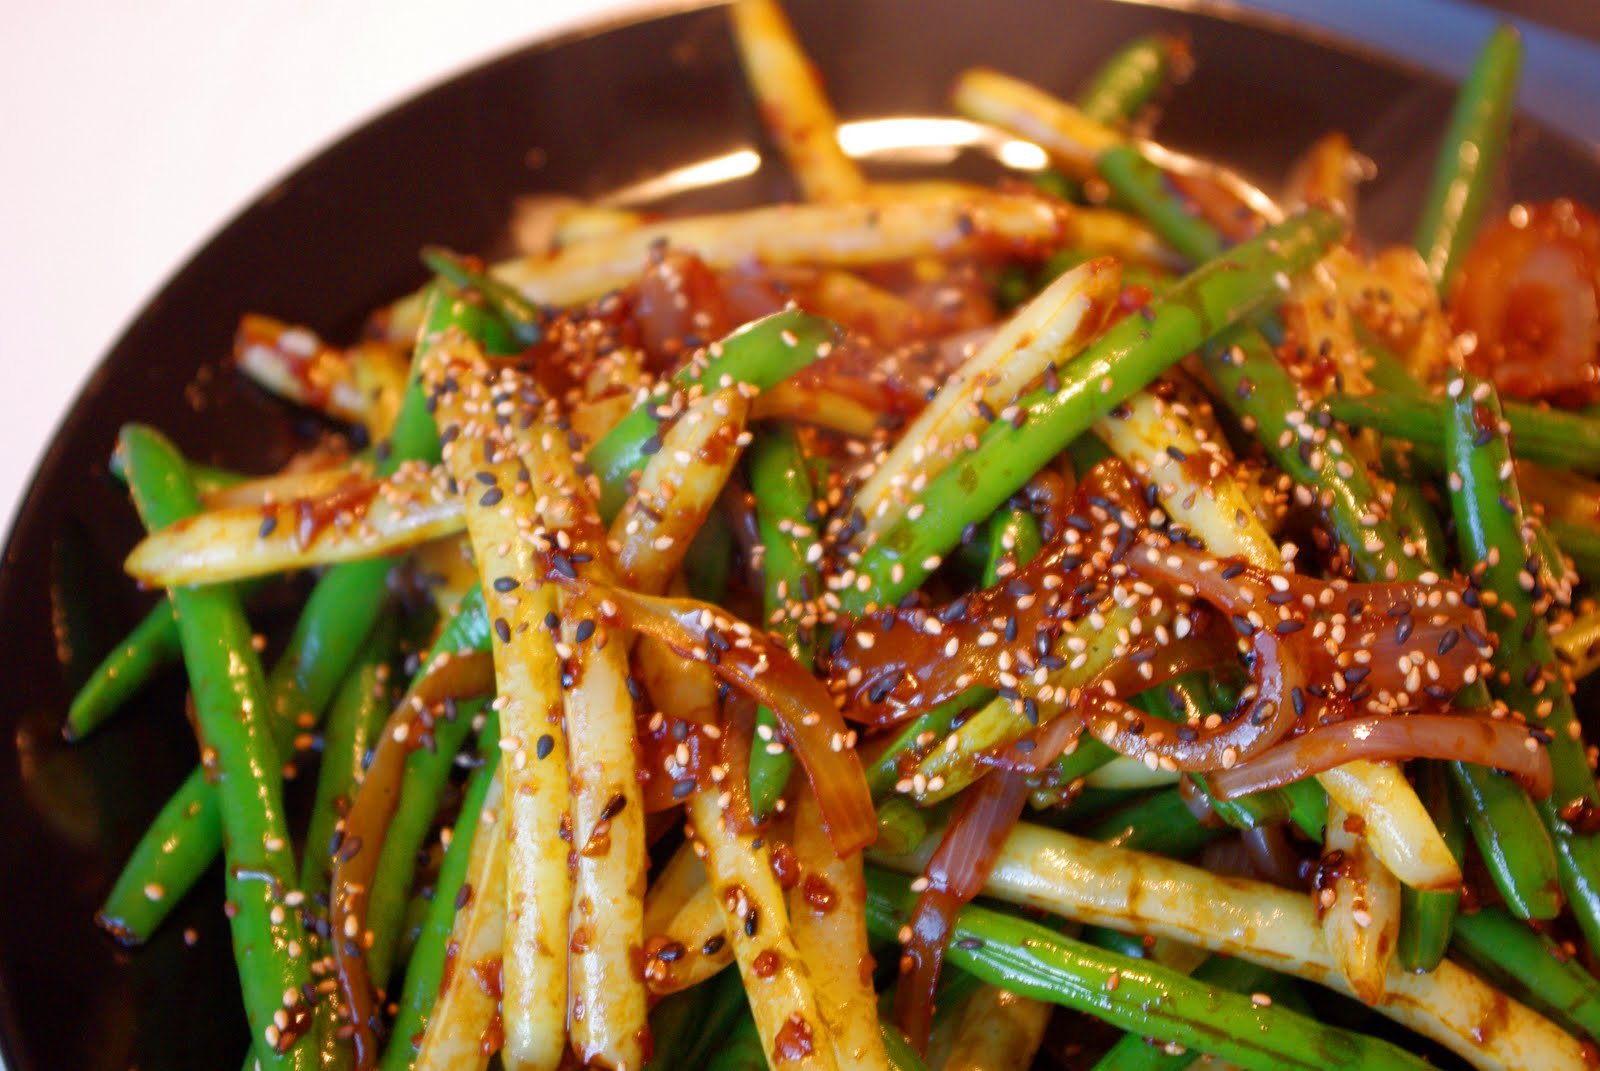 That Time I Cooked a Vegetable: Sesame Ginger Green Beans